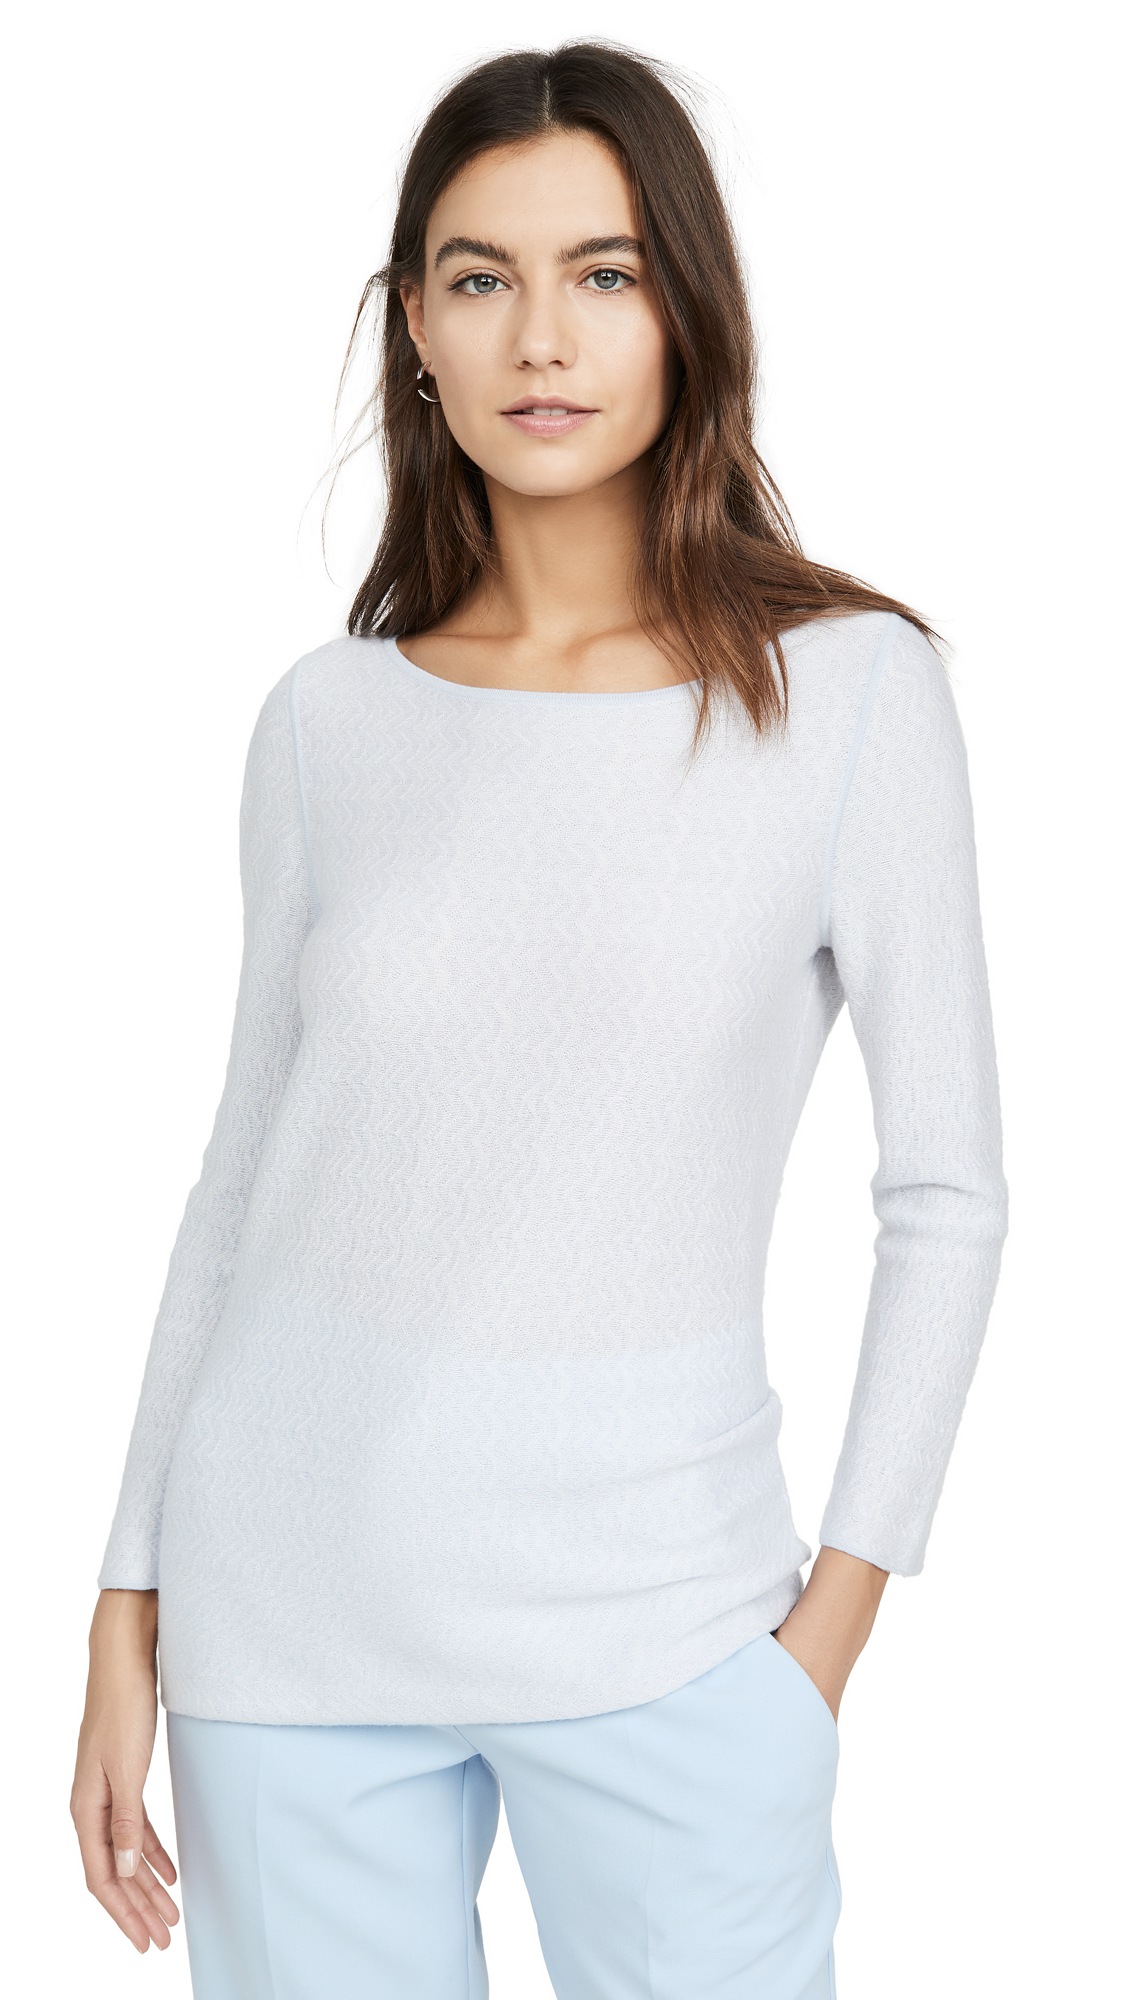 Photo of TSE Cashmere Cashmere Top - shop TSE Cashmere Tops, Blouses online